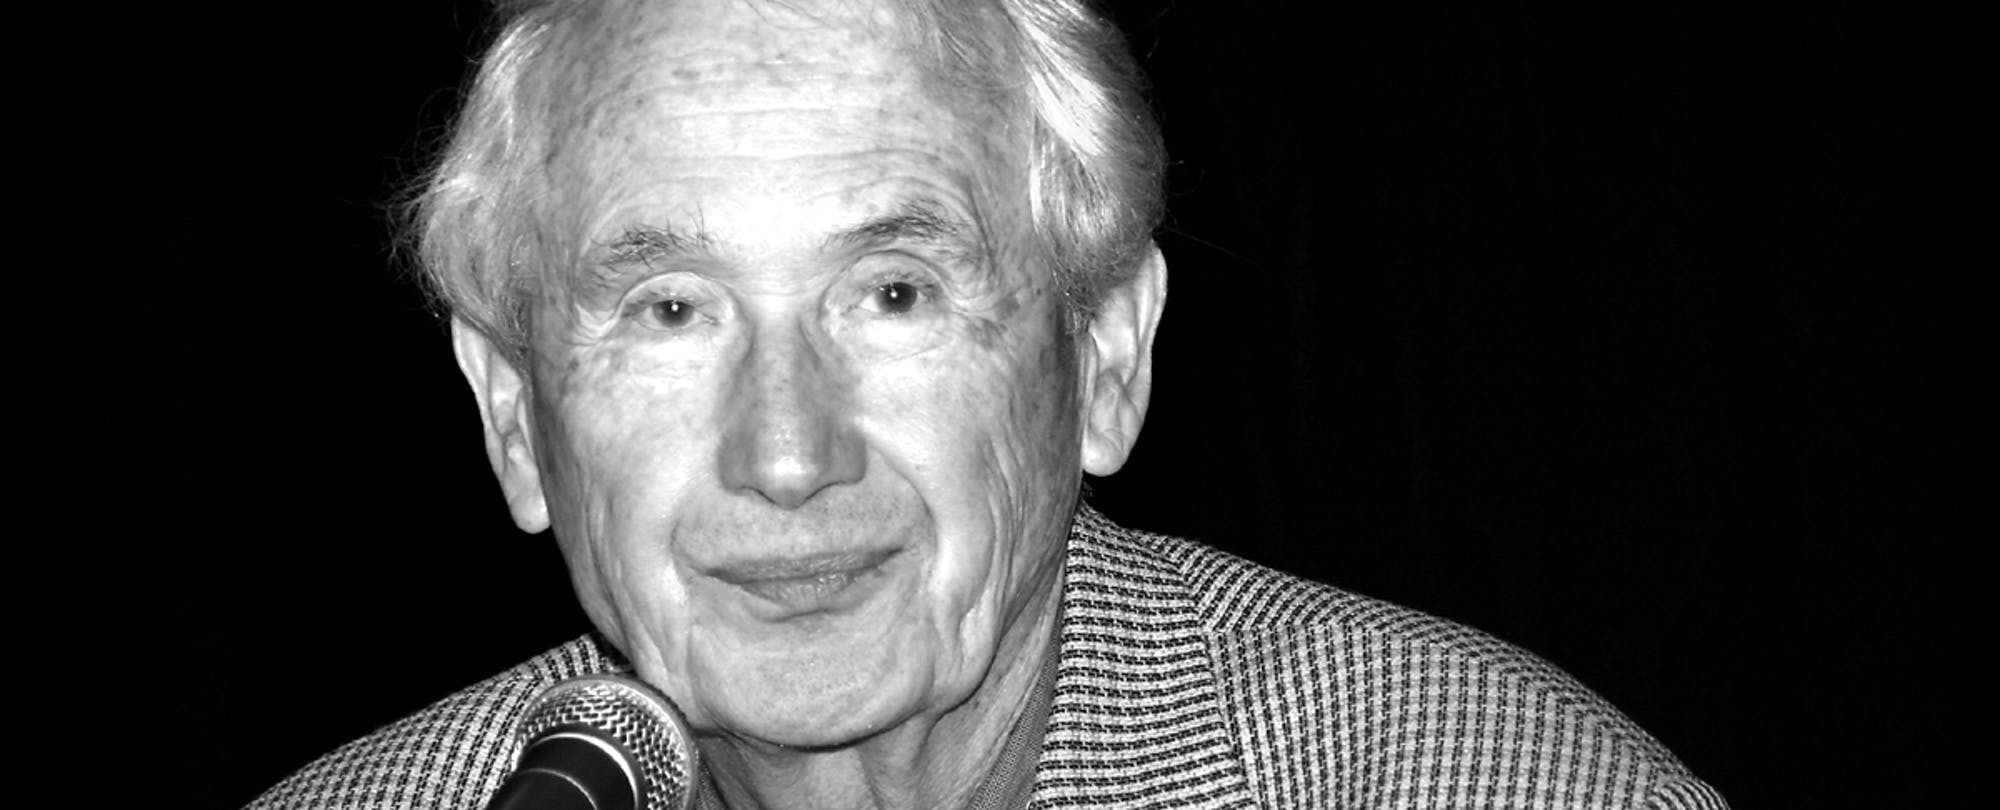 Margery Mayer's 2015 Personal Statement: Frank McCourt, the Storytelling Machine of Heart and Wit